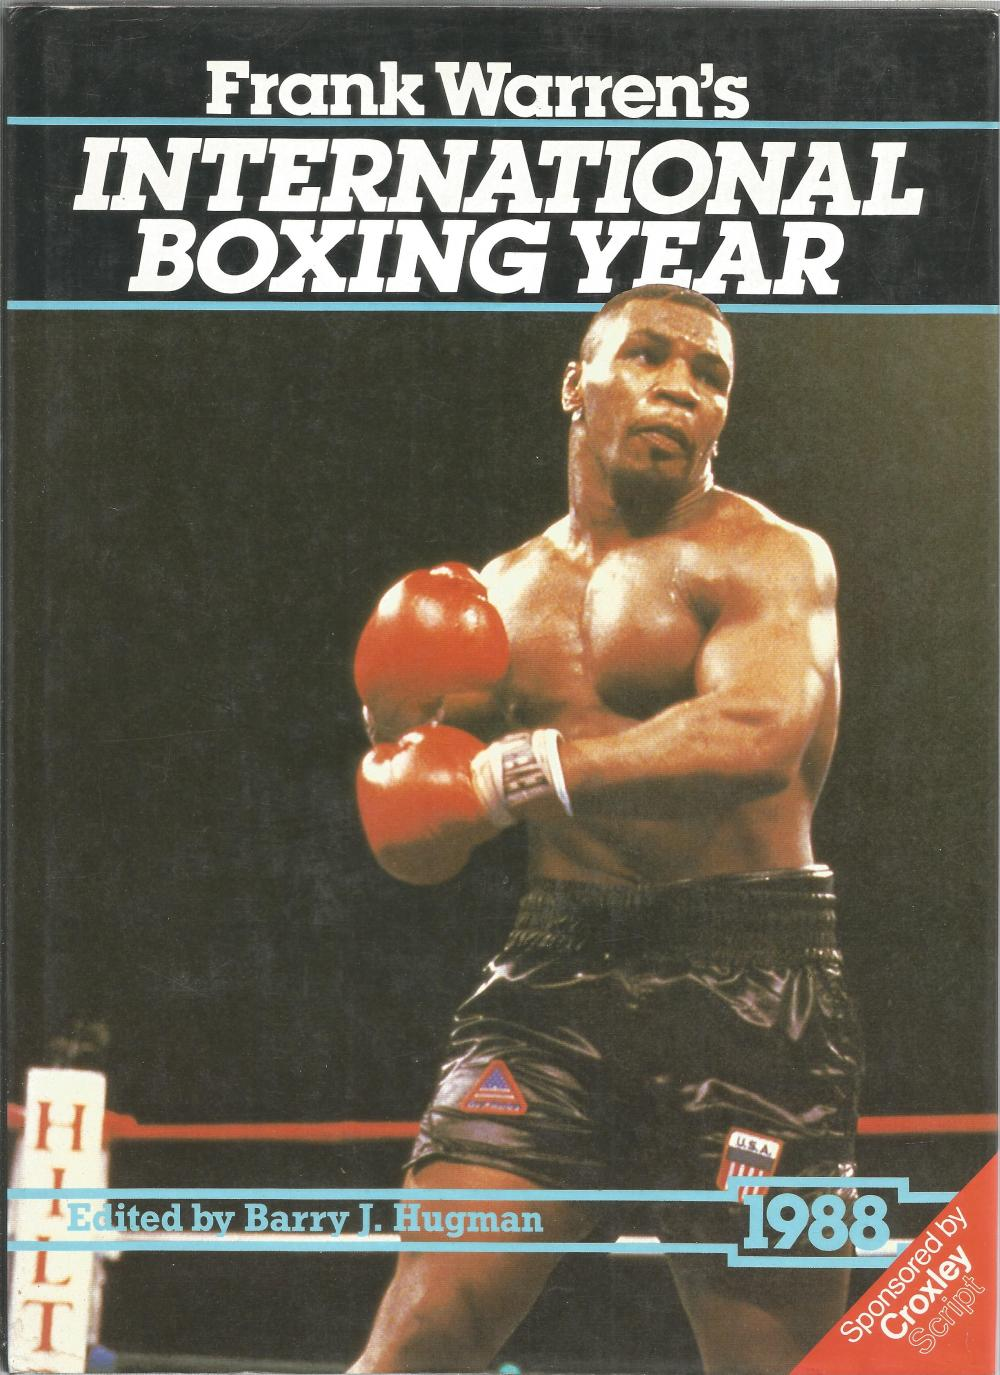 Frank Warren's International Boxing Year edited by Barry J Hugman. Unsigned large hardback book with